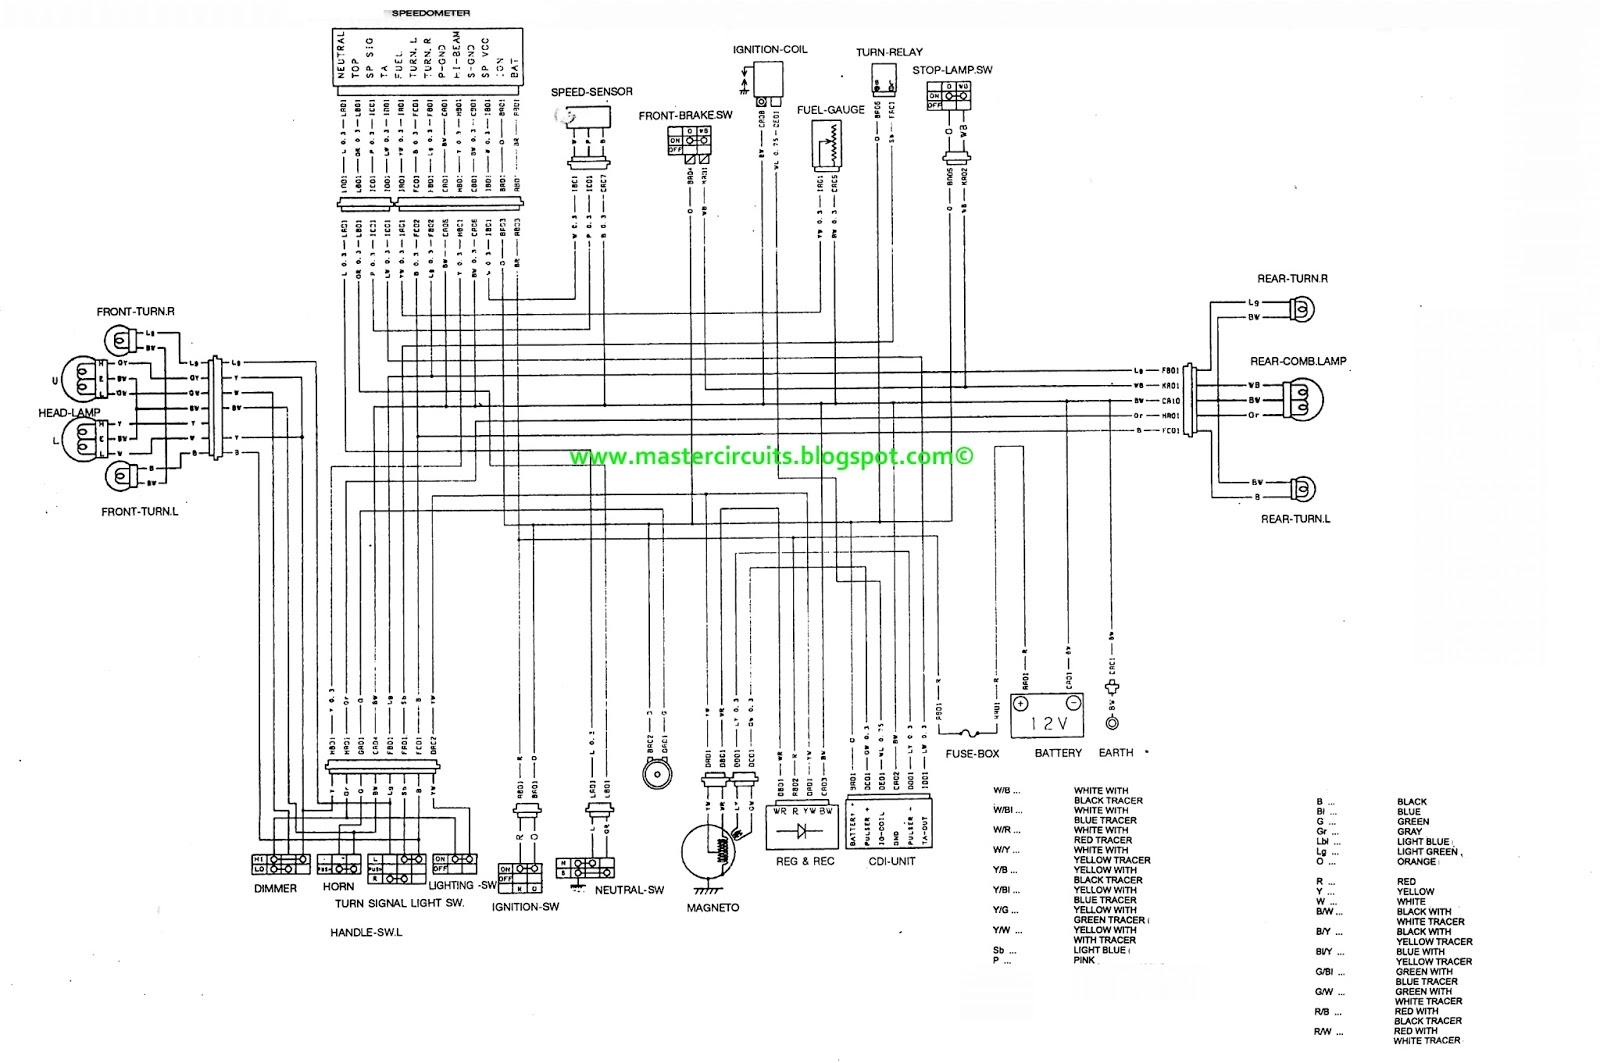 complex wiring diagram complex wiring diagrams raider 150r wiring diagram